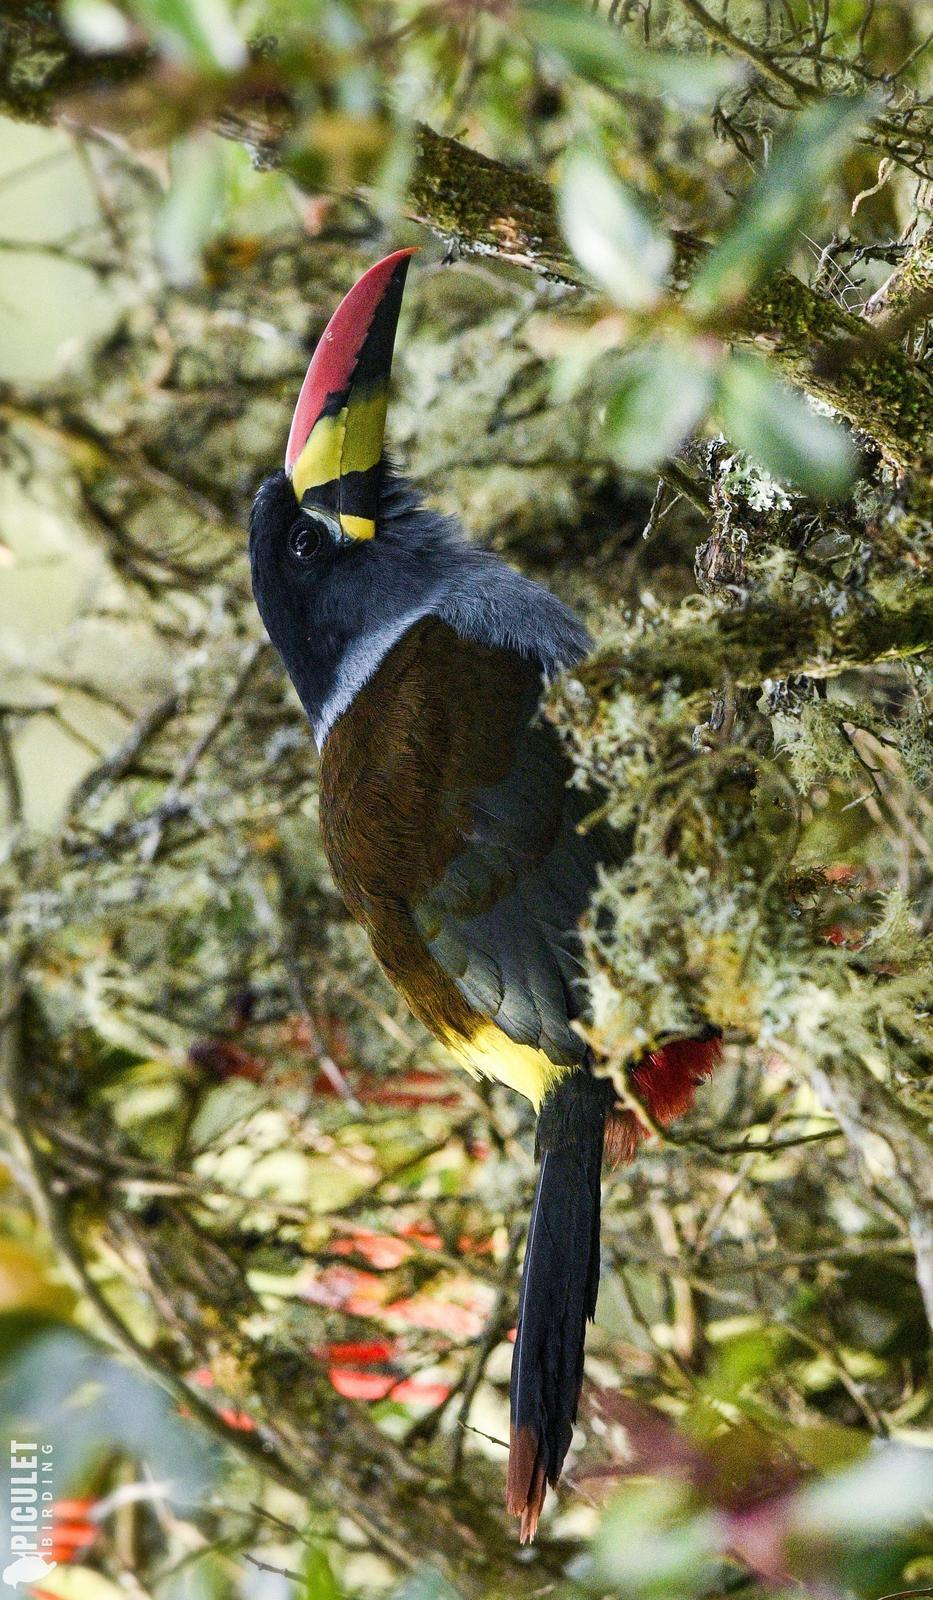 Gray-breasted Mountain-Toucan Photo by Julio Delgado